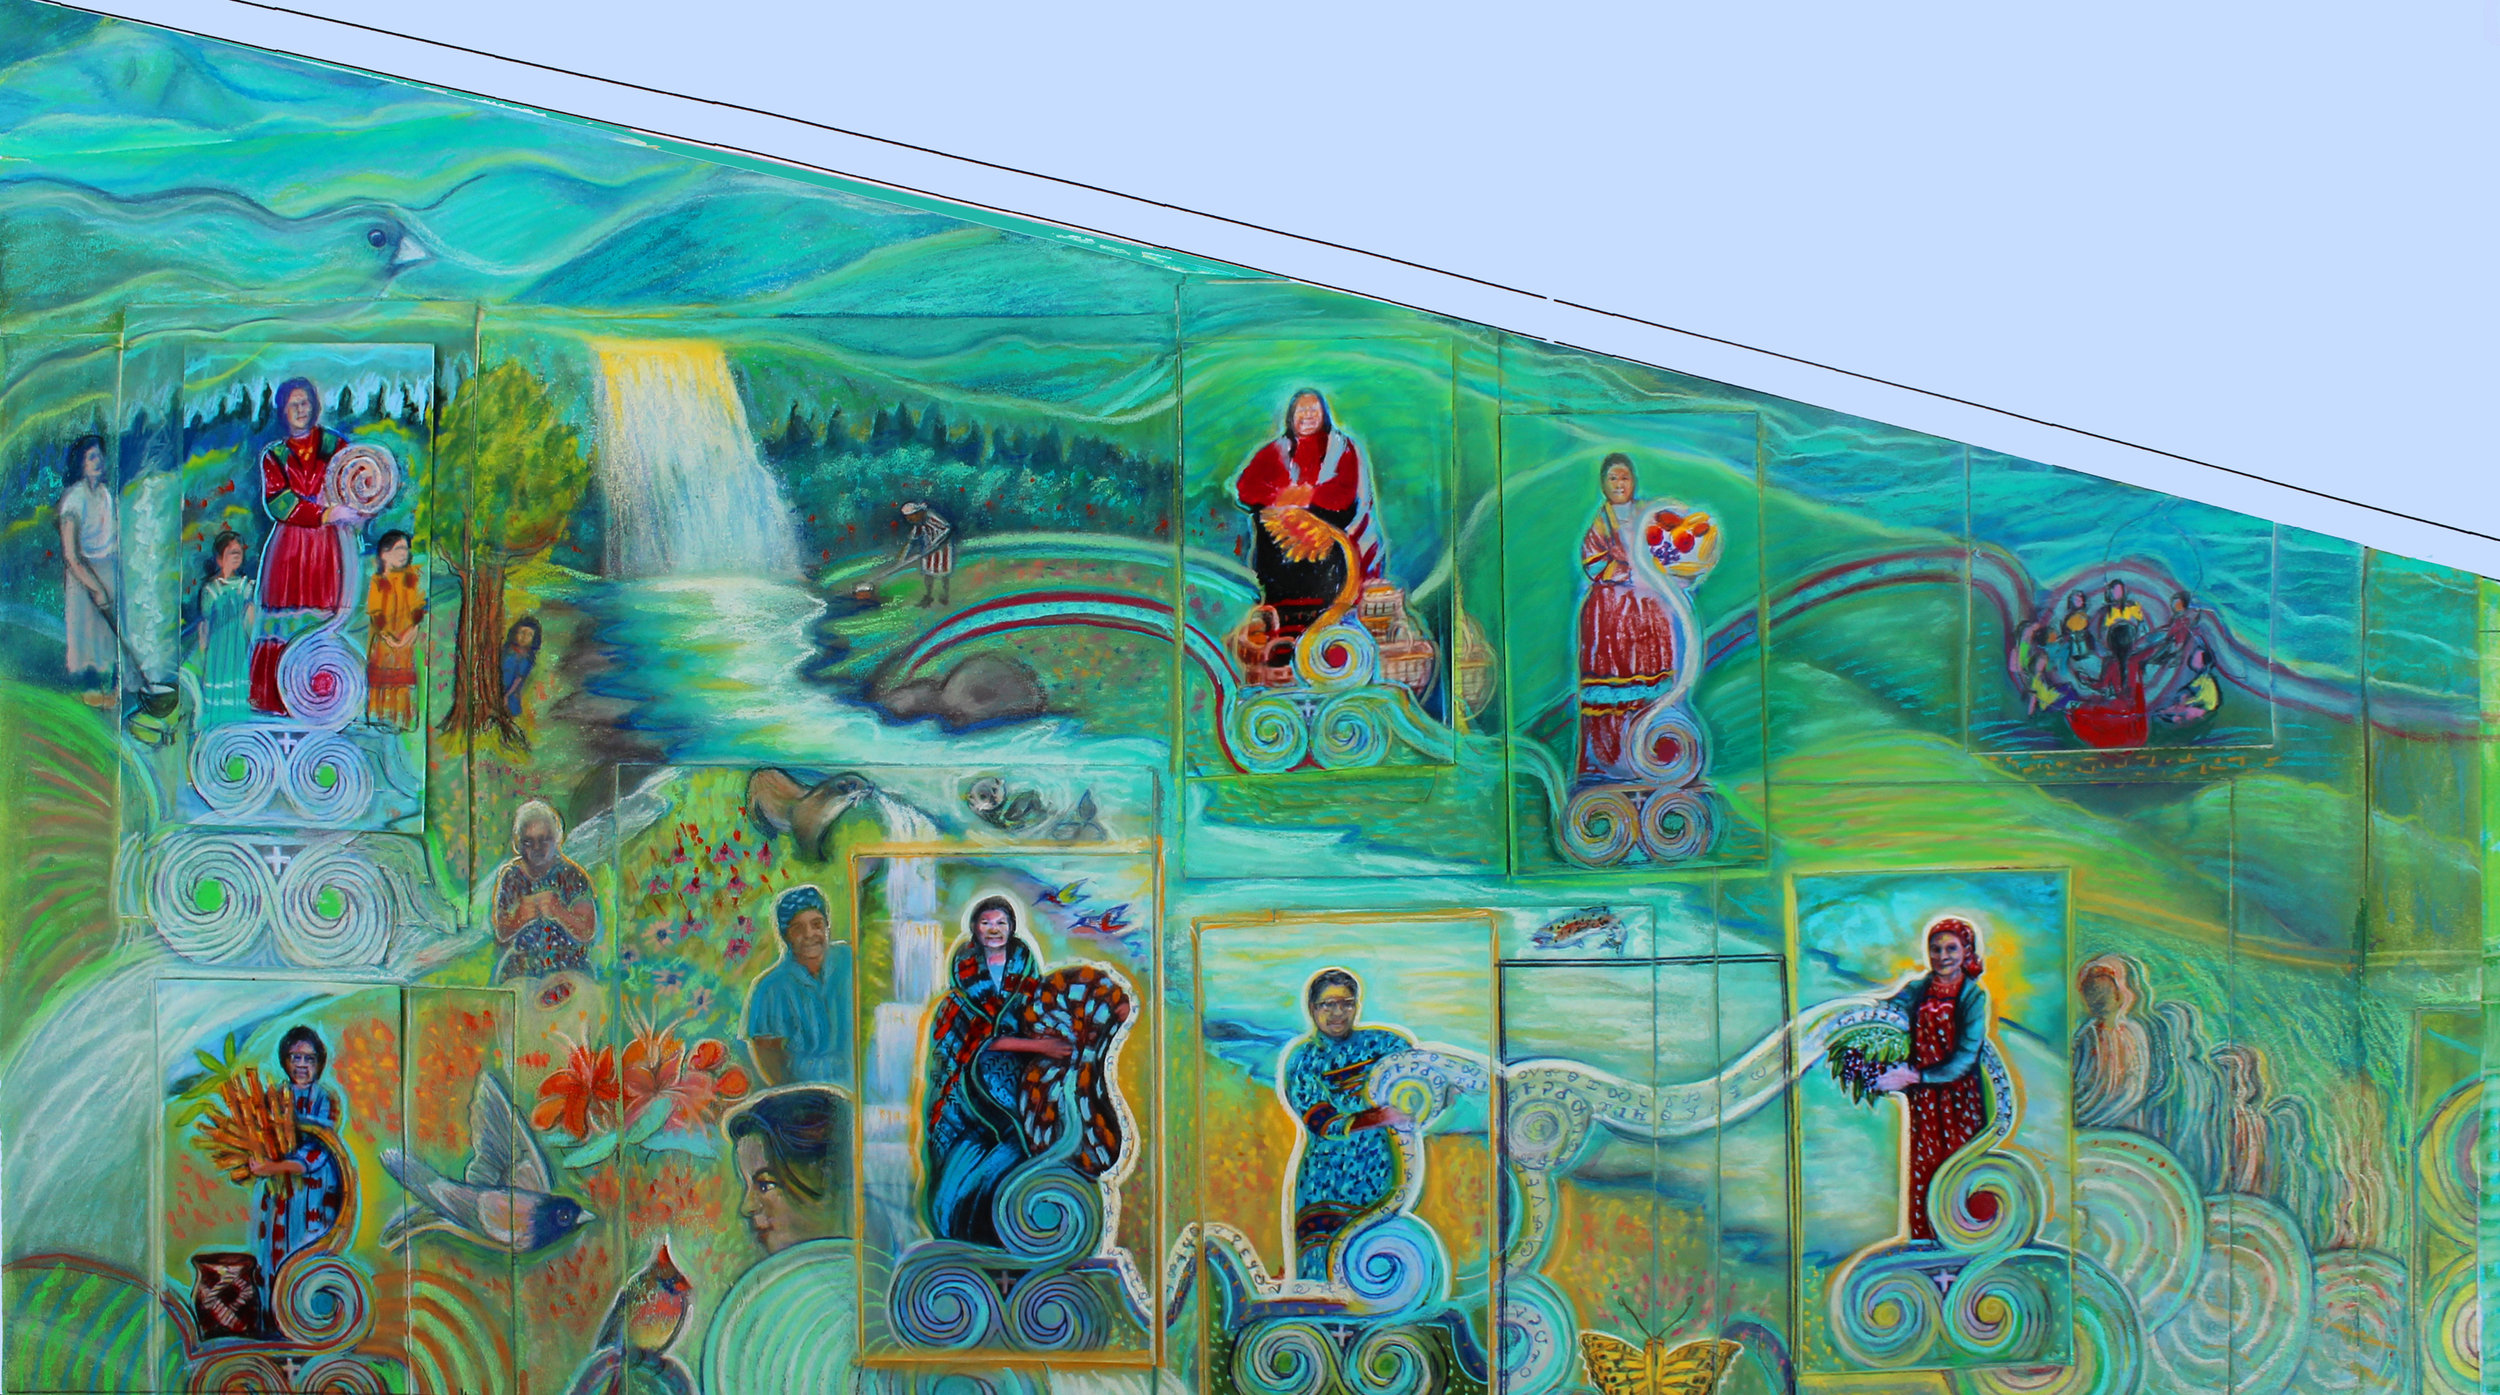 Draft rendering for the Snowbird Cherokee Beloved Women Mural Project. Photo courtesy of Doreyl Ammons Cain